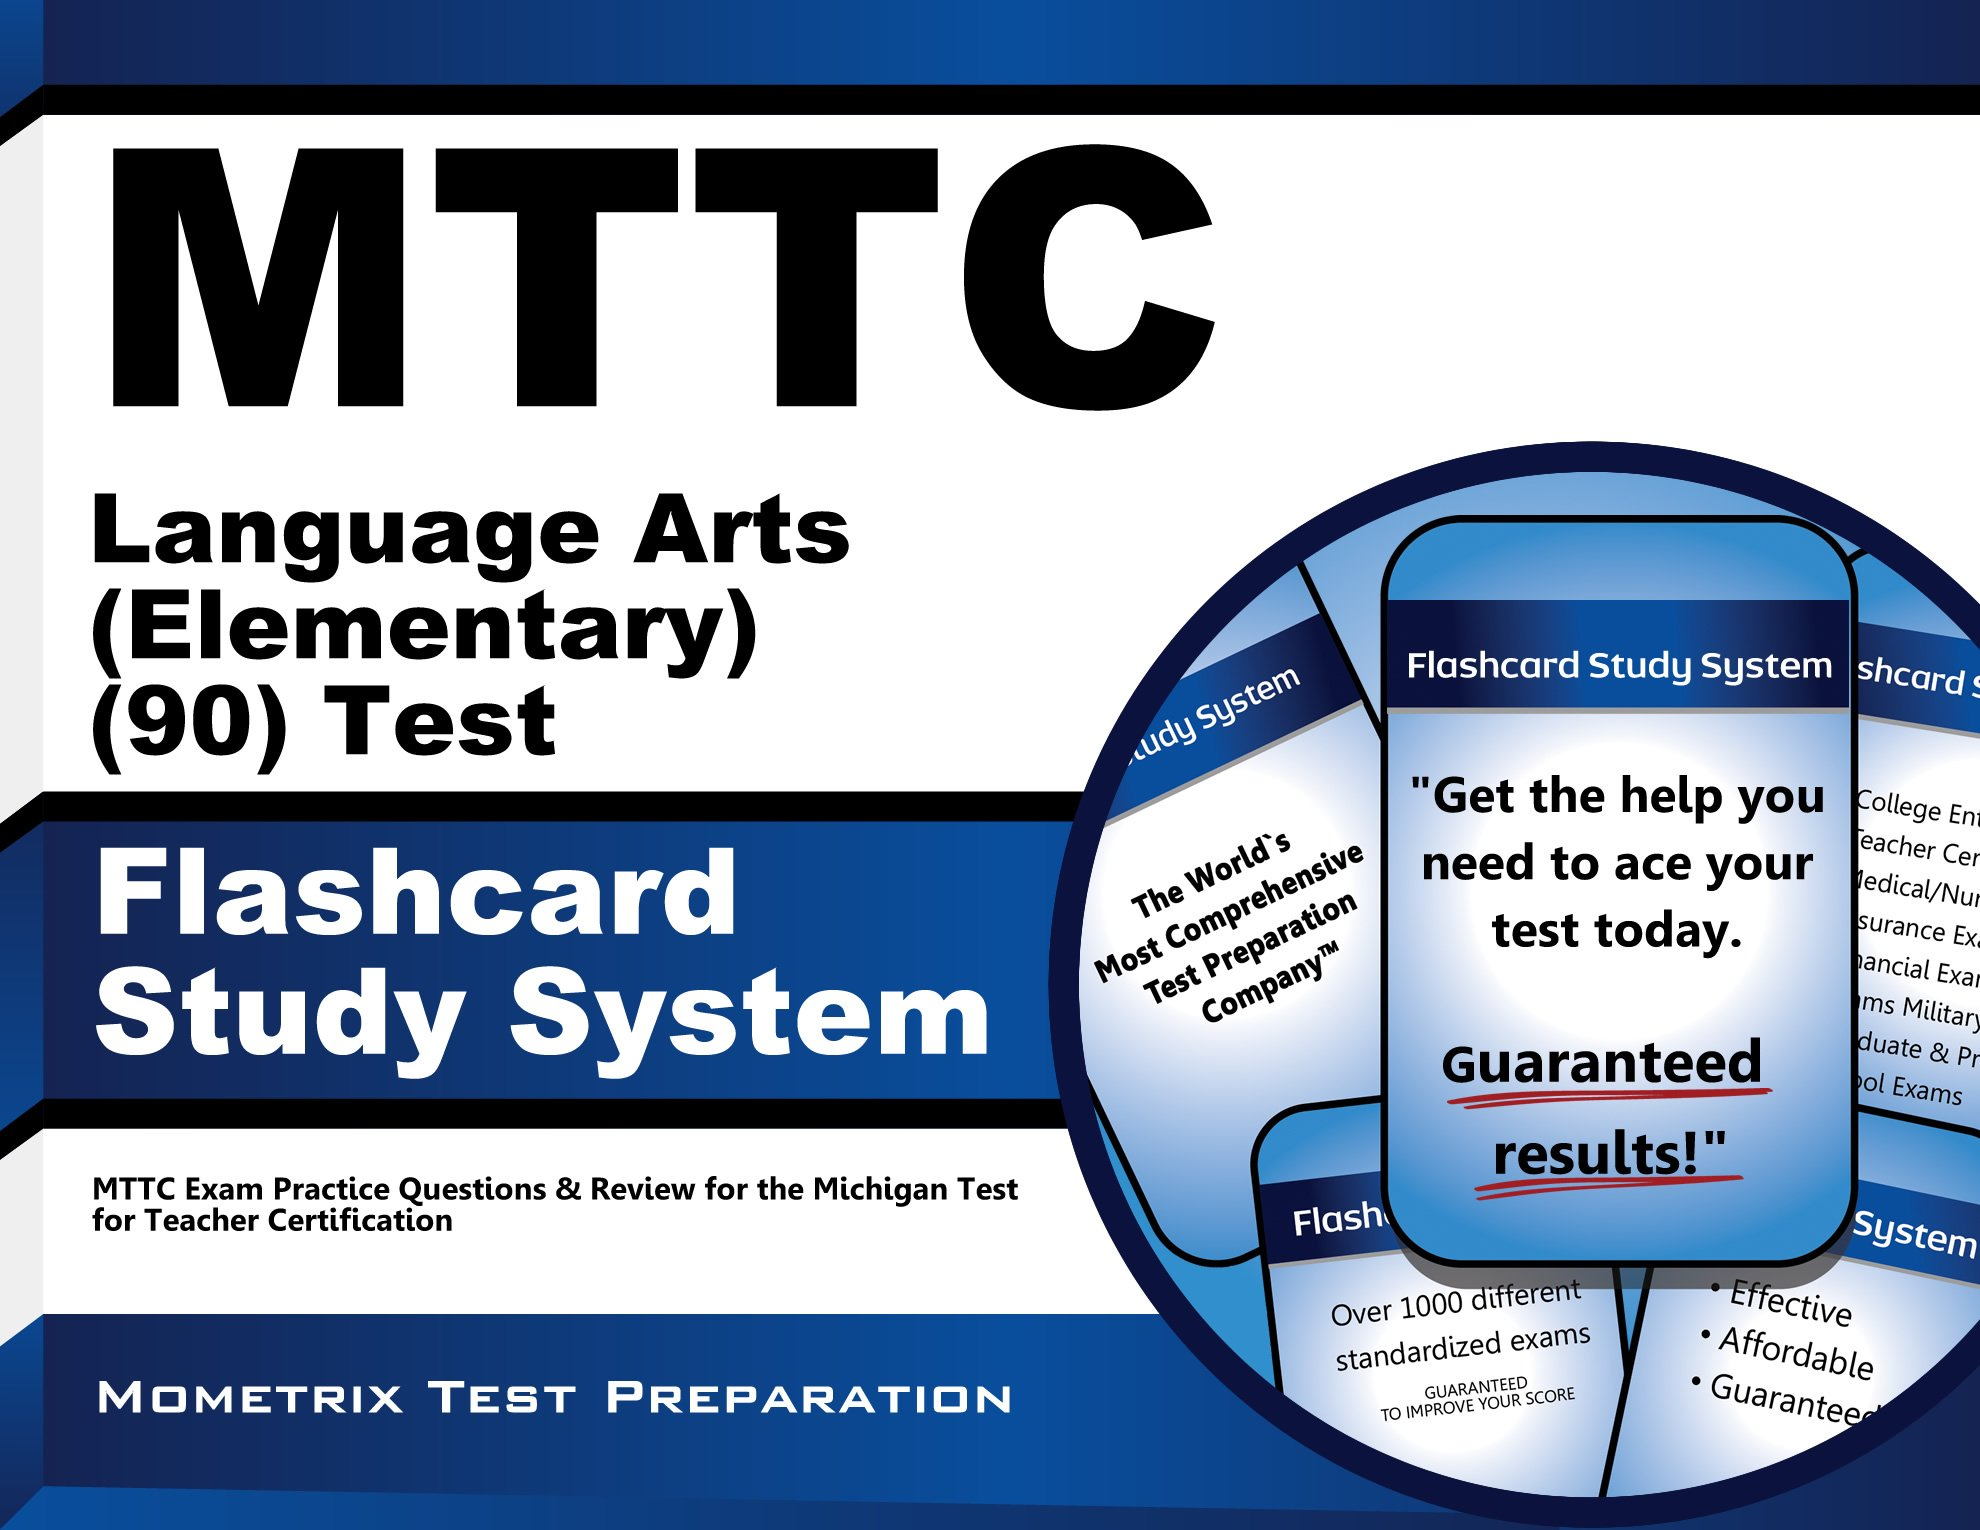 Download MTTC Language Arts (Elementary) (90) Test Flashcard Study System: MTTC Exam Practice Questions & Review for the Michigan Test for Teacher Certification PDF